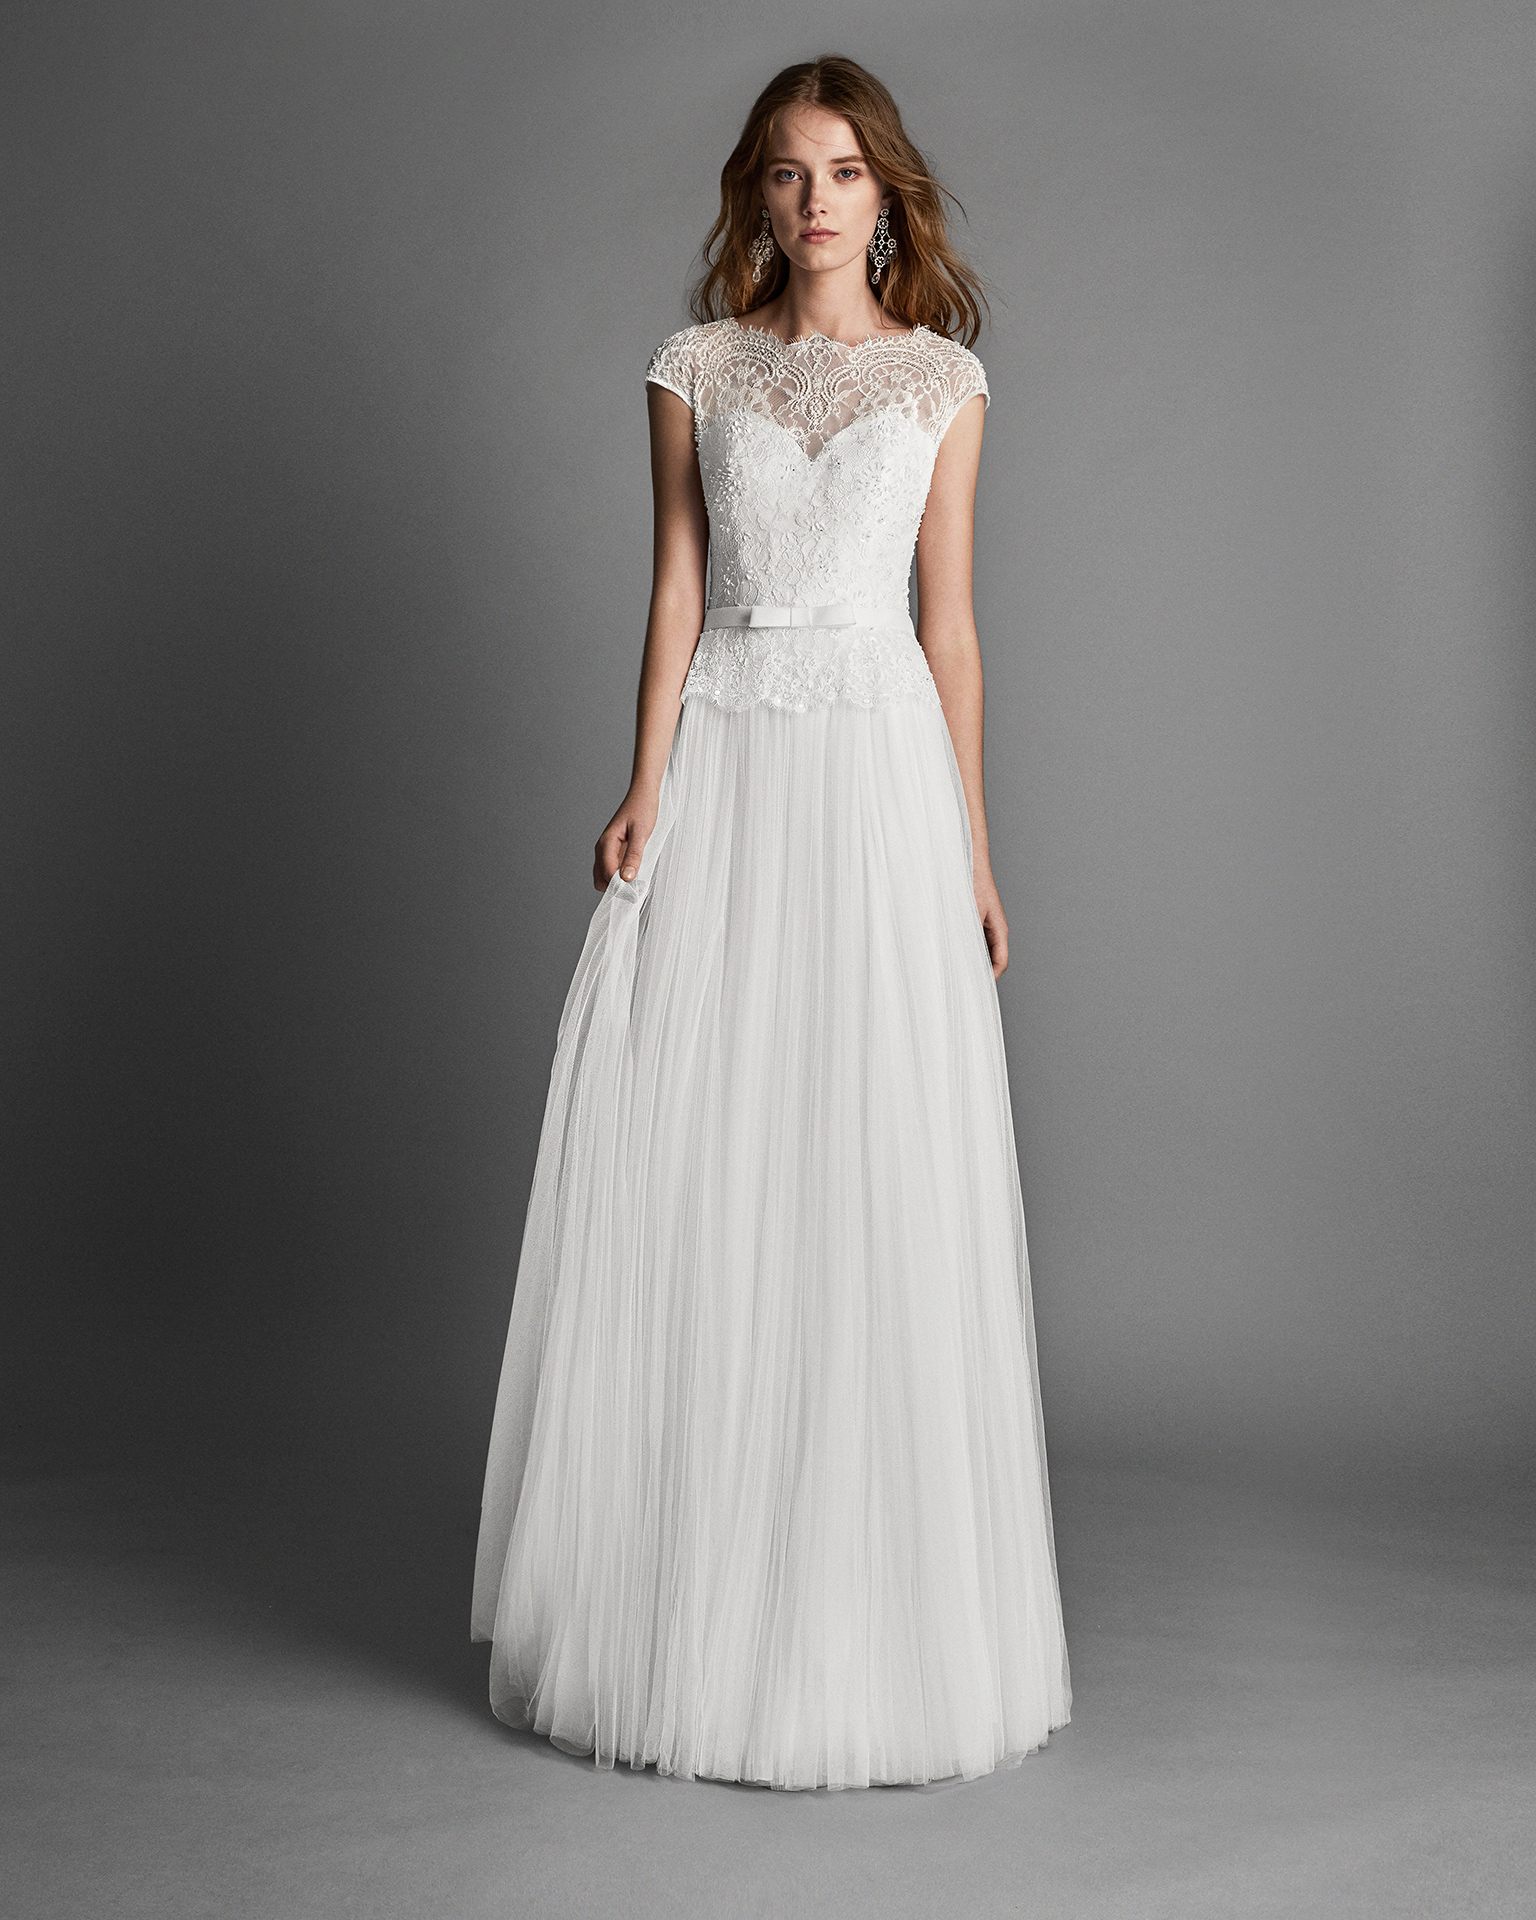 A-line tulle and lace wedding dress with short sleeves, and low back with beadwork detail.